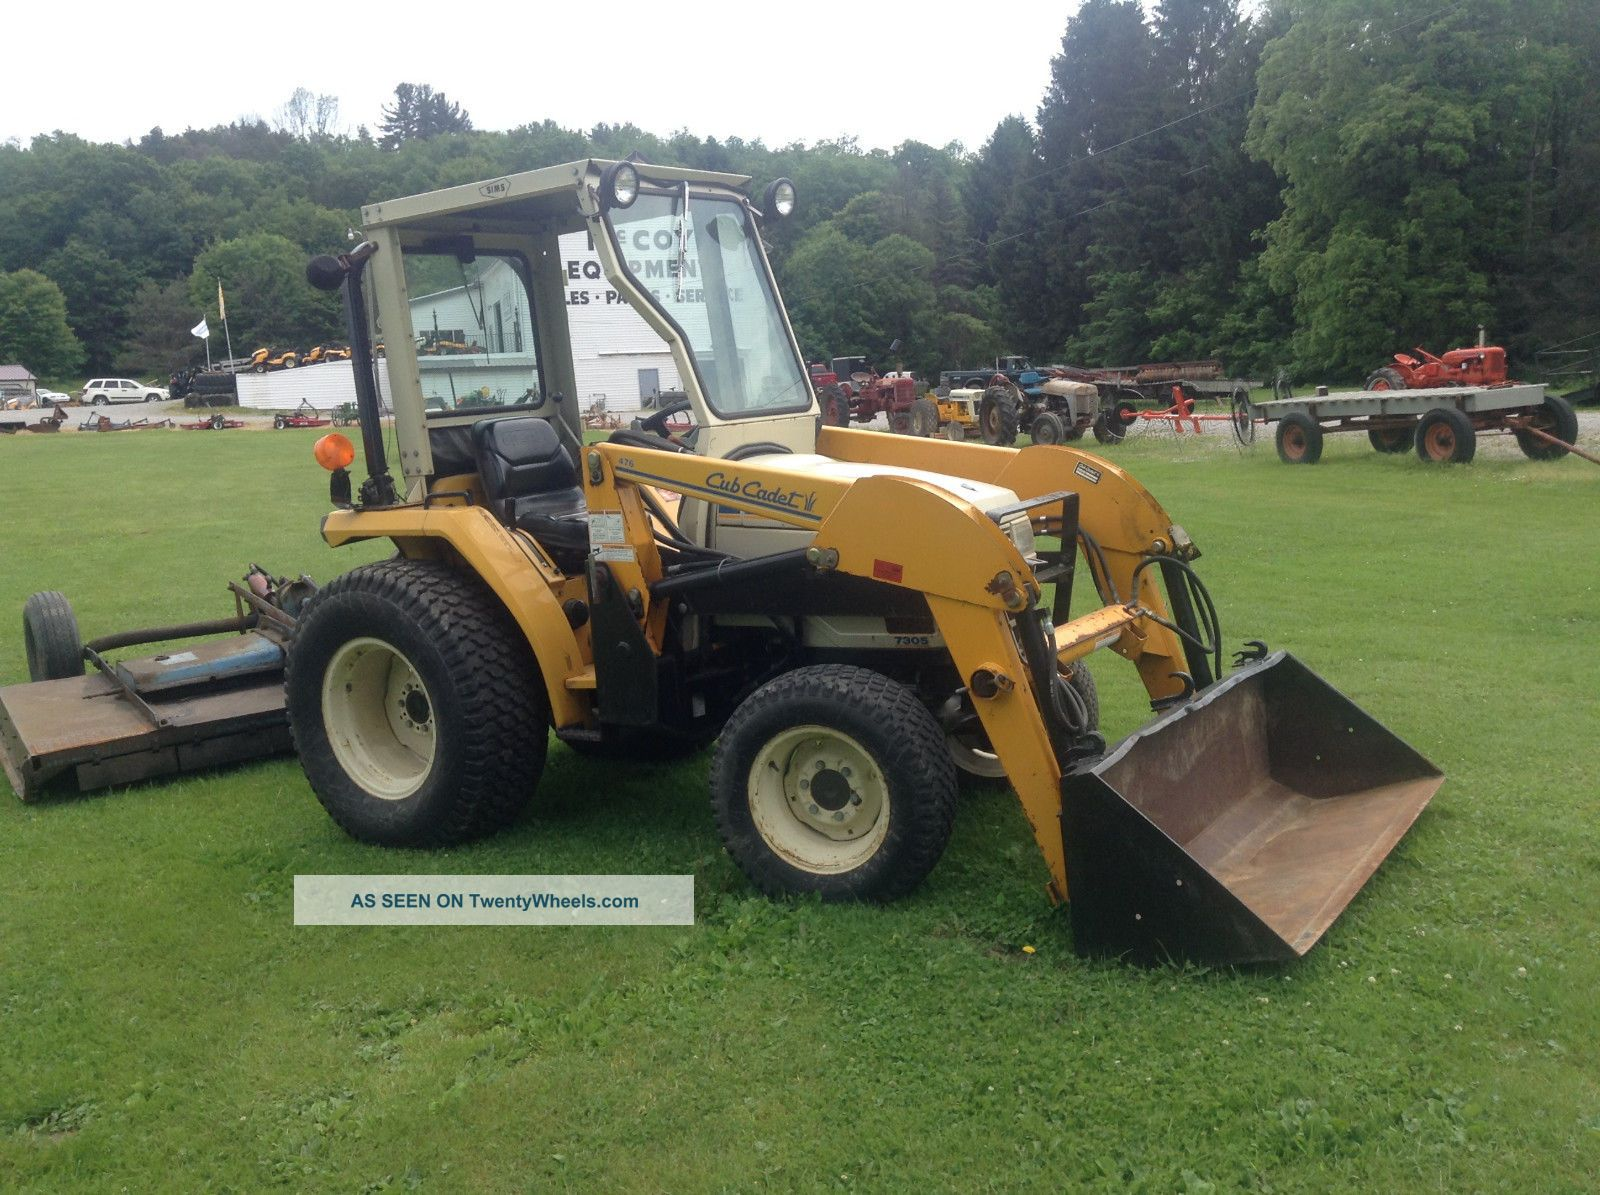 Tractor Loader Boom Middle Steeering : Cub cadet compact tractor model with front loader